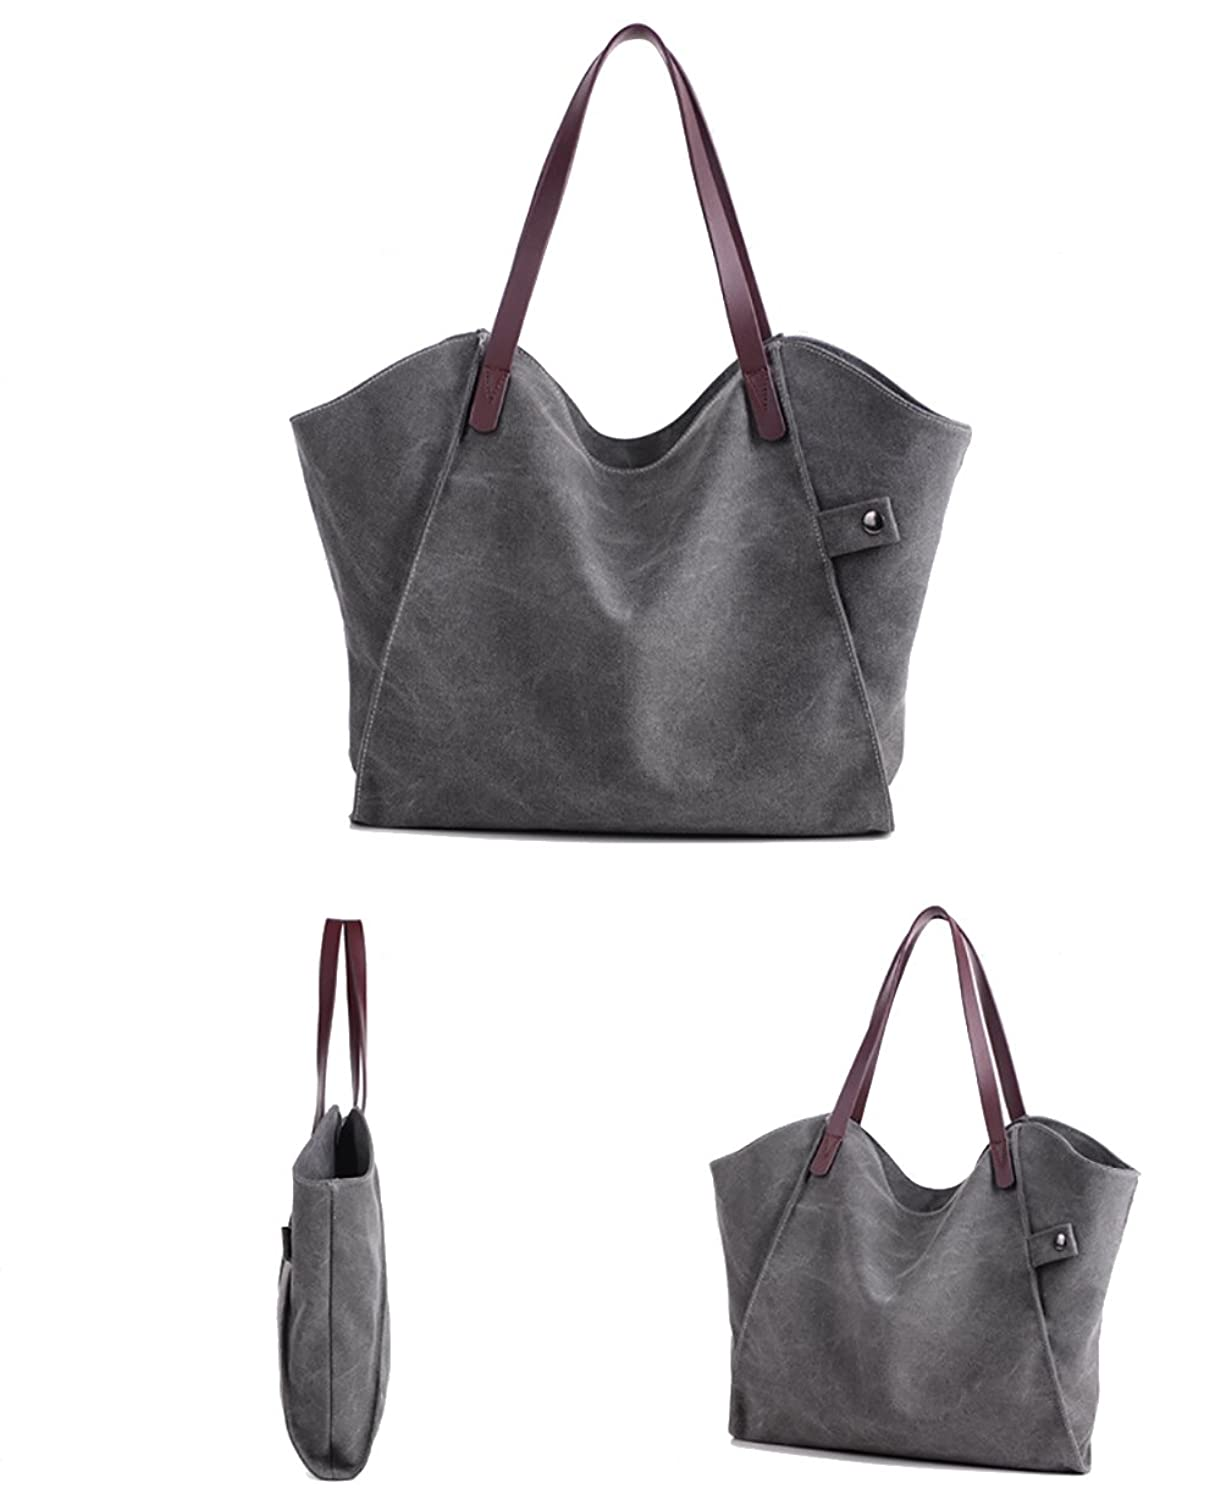 Pioneeryao Canvas Shoulder Tote Bag Casual Simple Style Daily Bag for Woman  (BEIGE): Amazon.co.uk: Shoes & Bags